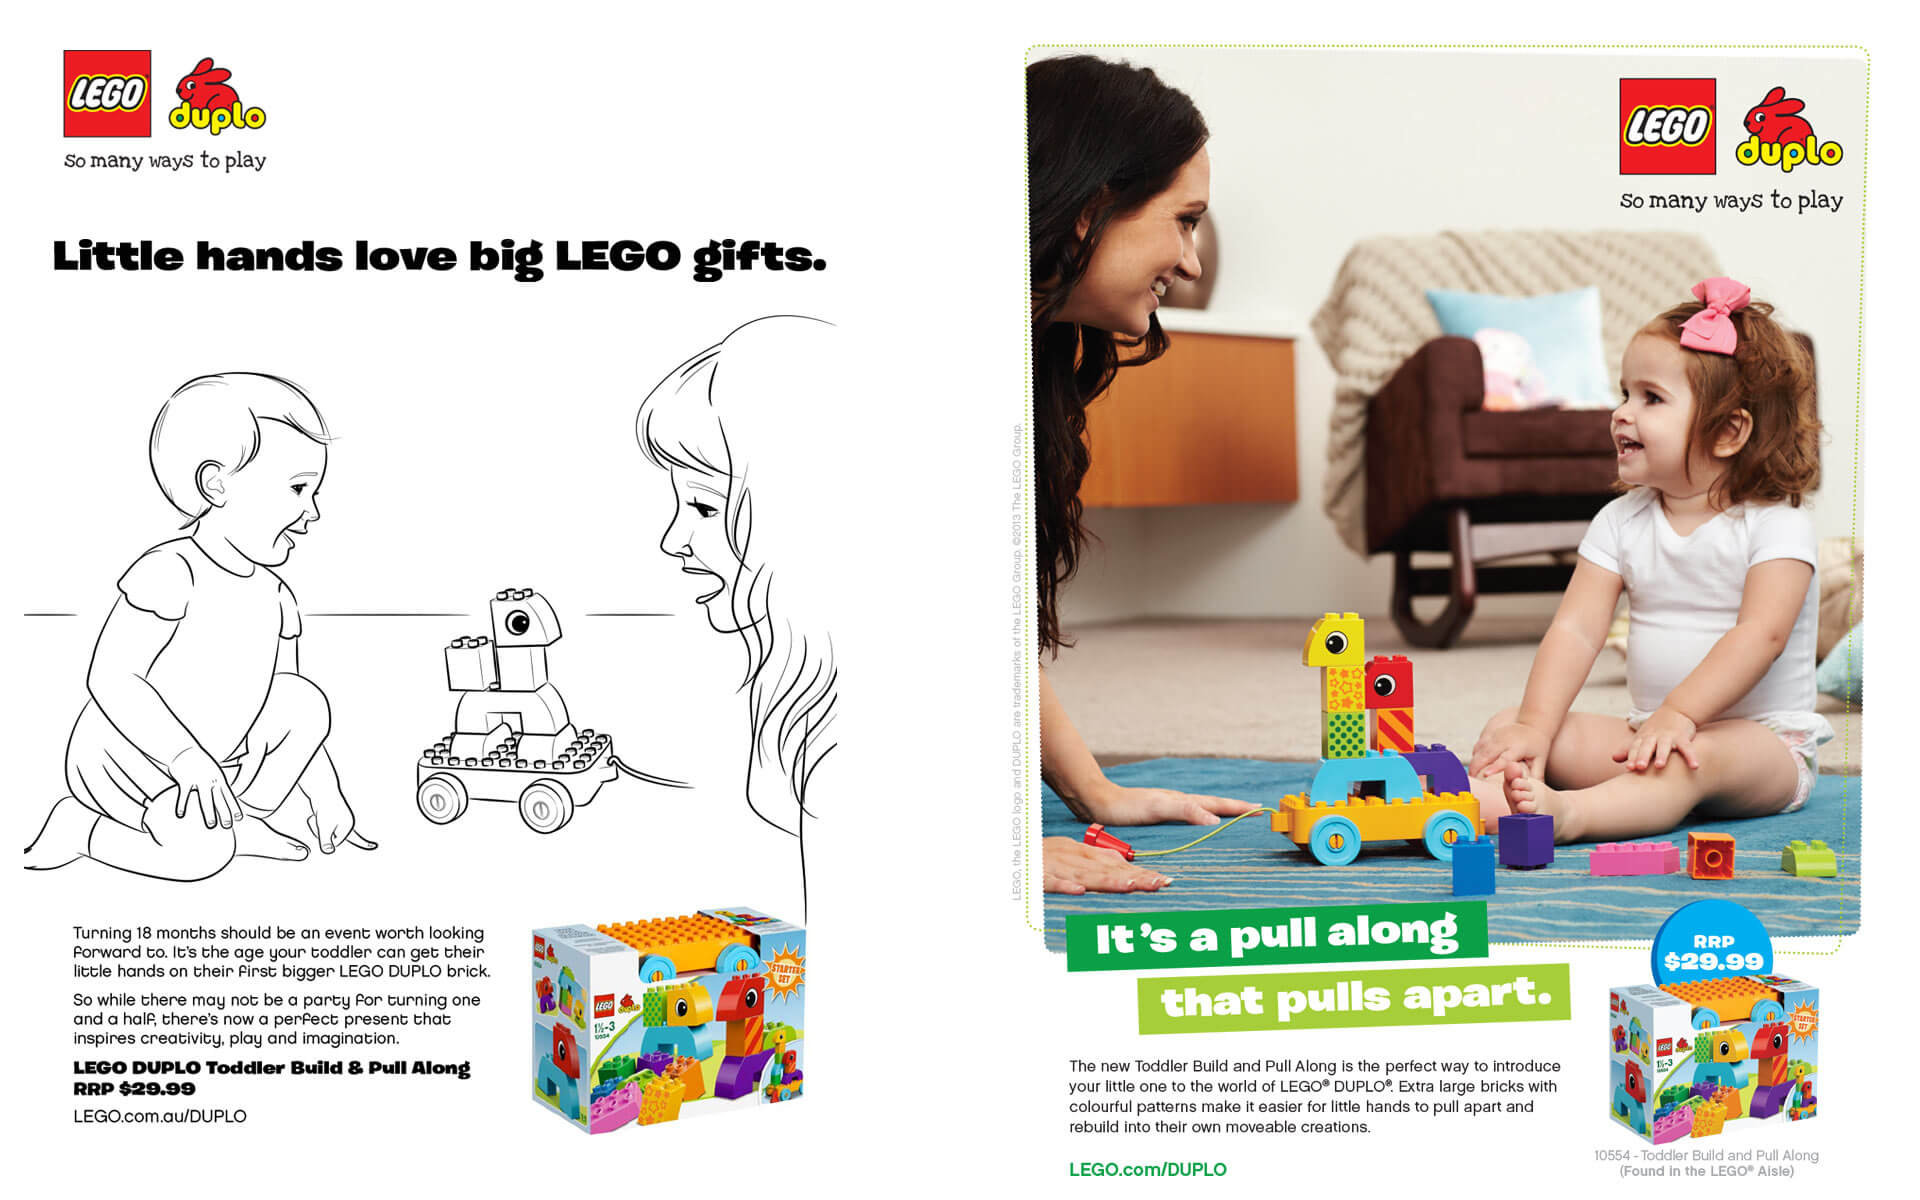 LEGO Duplo It's a pull along that pulls apart, Ad scamp and final design